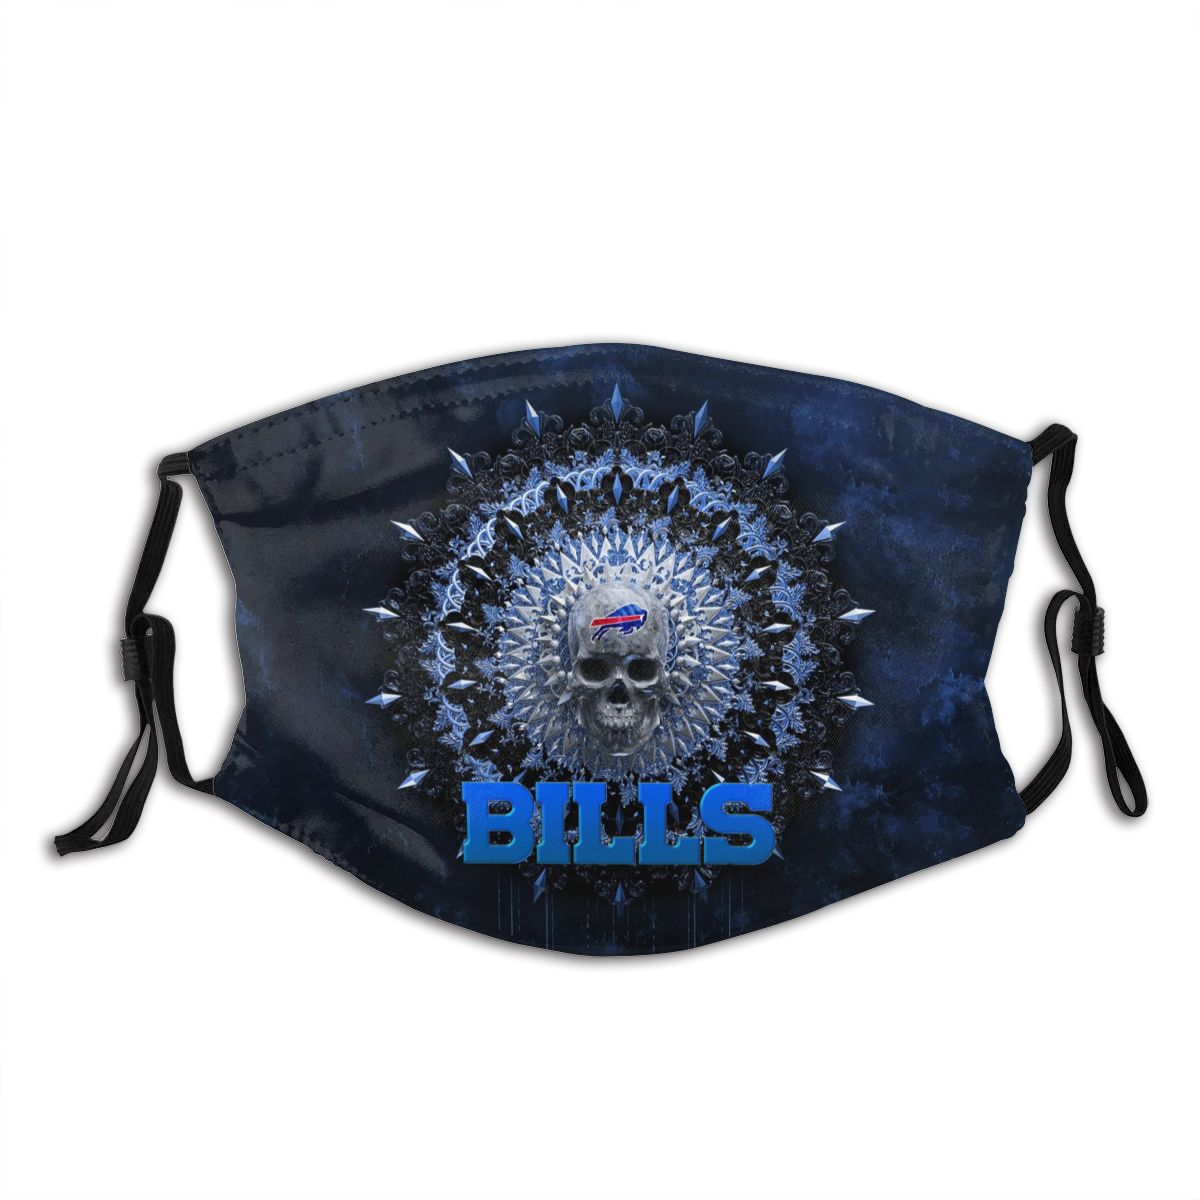 Bills Adult Cloth Face Covering With Filter